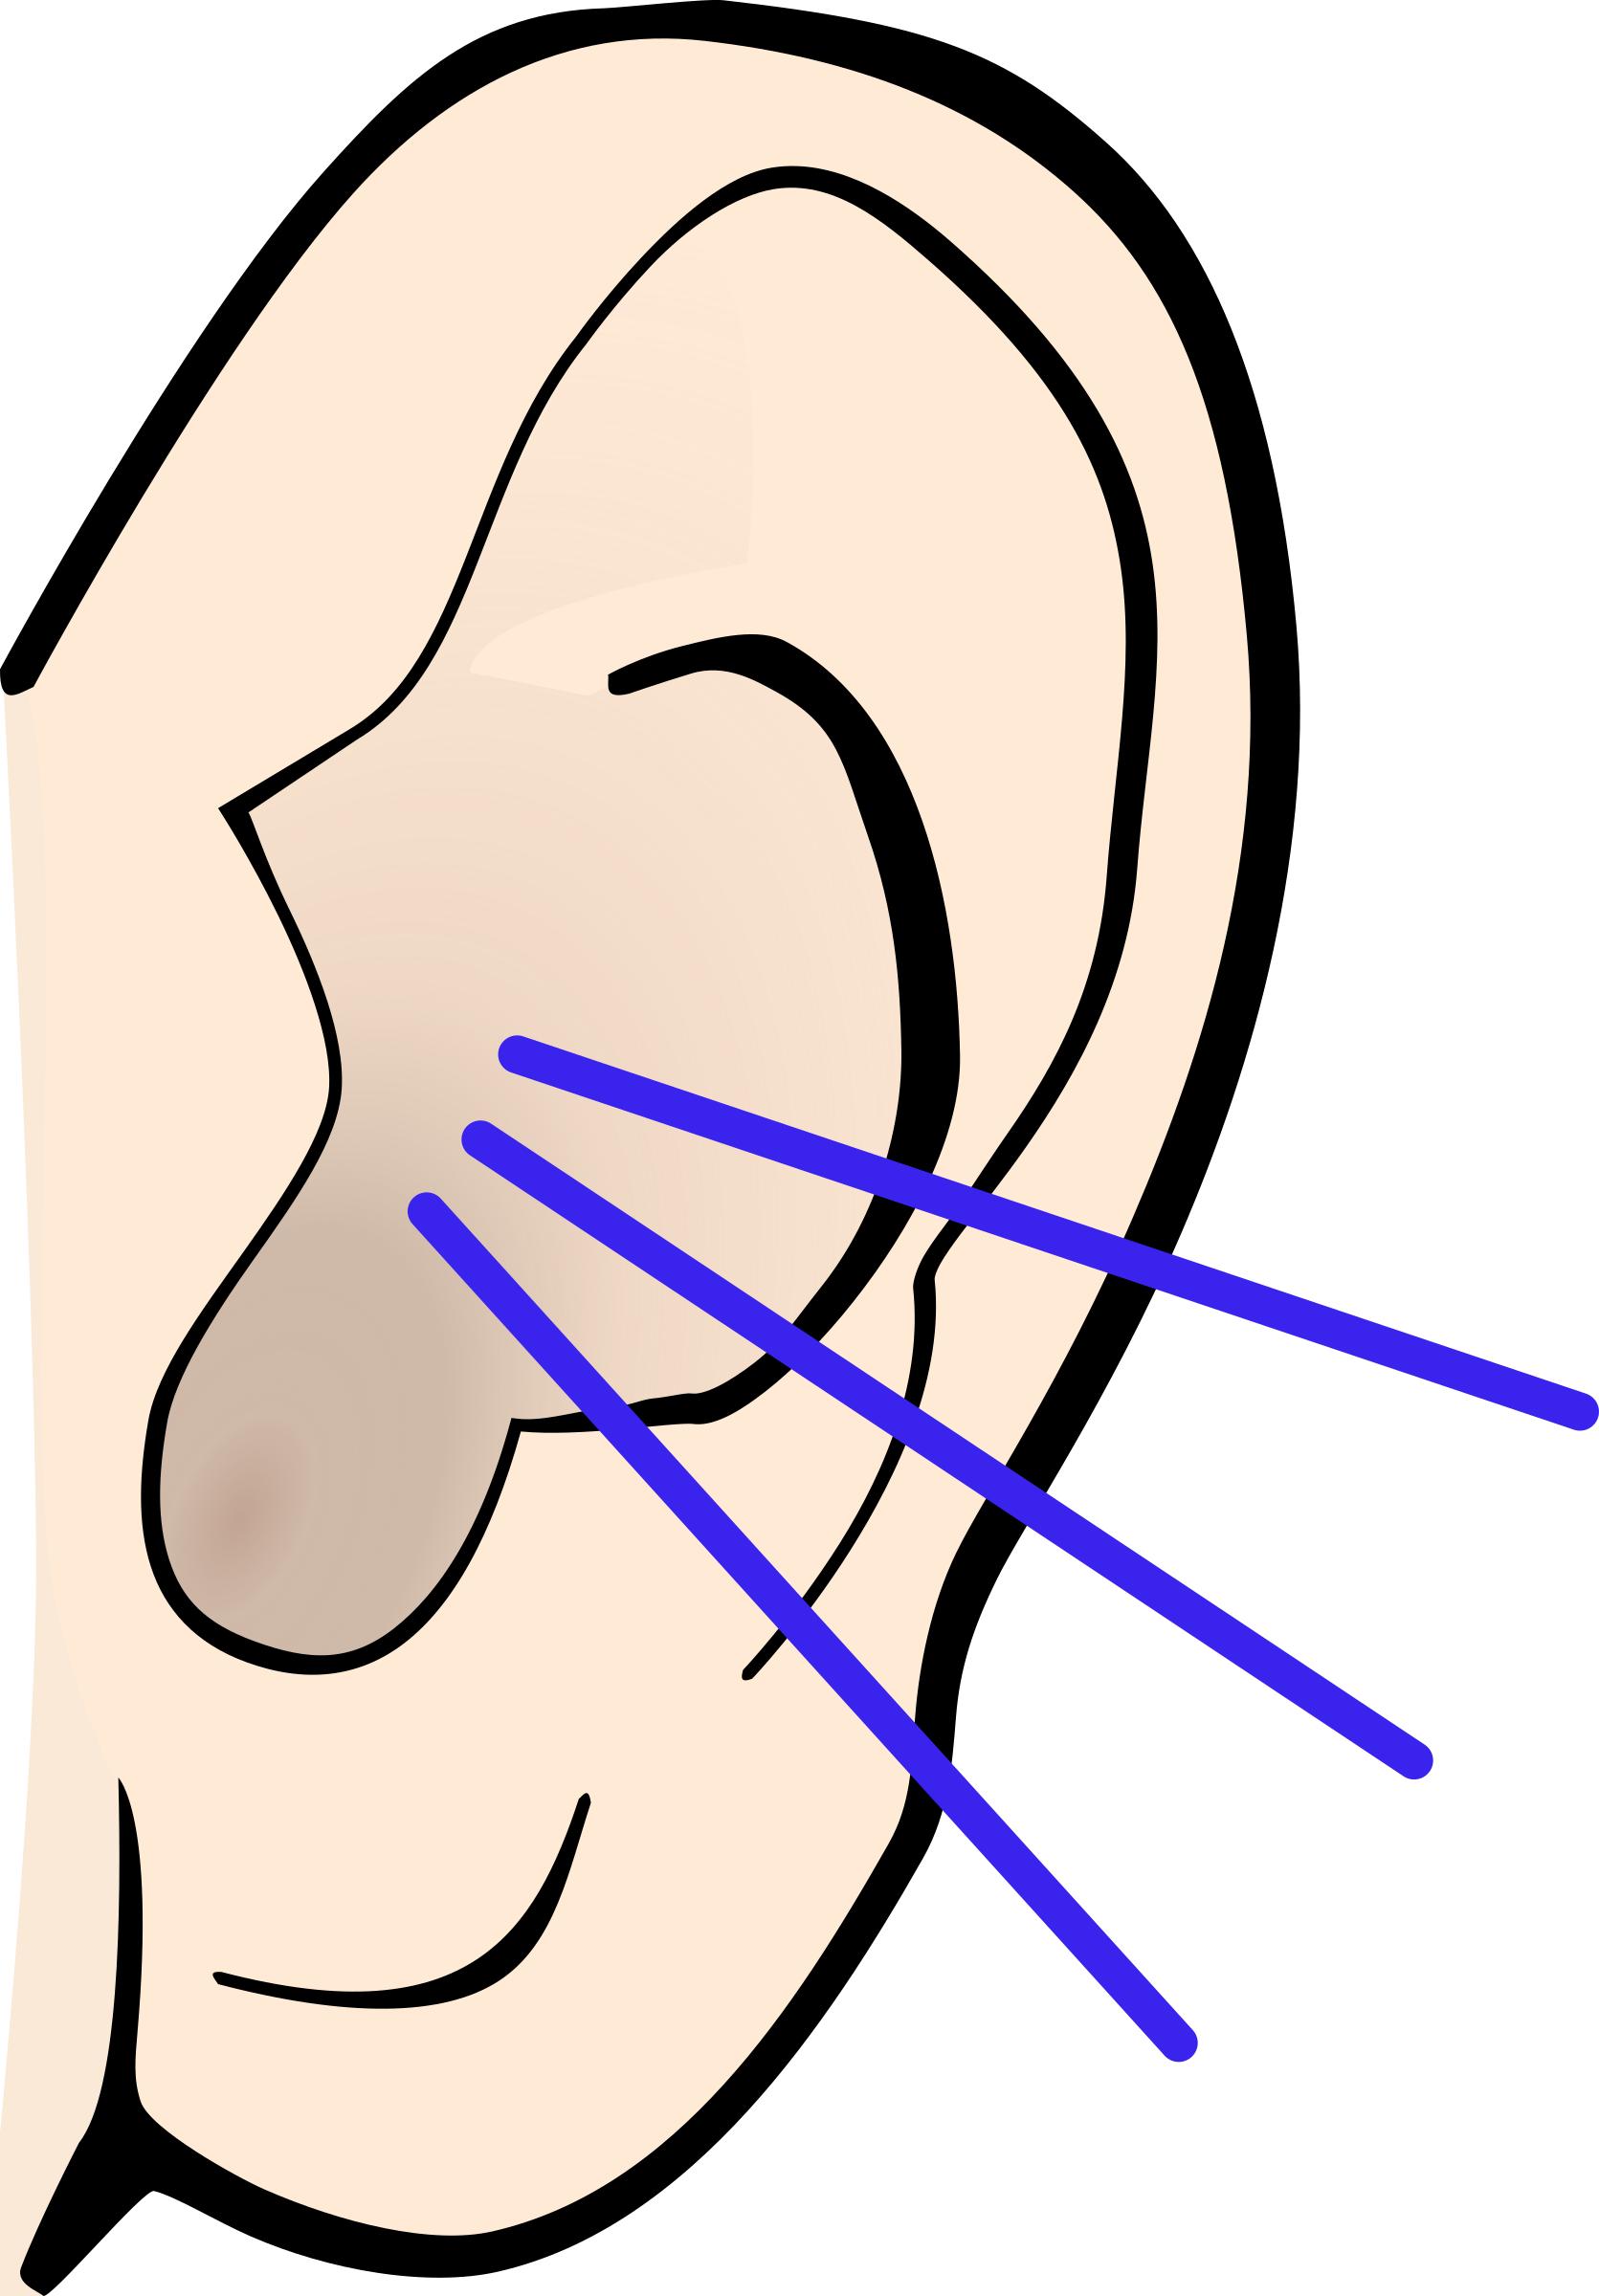 BIG IMAGE (PNG) - PNG Ears Listening